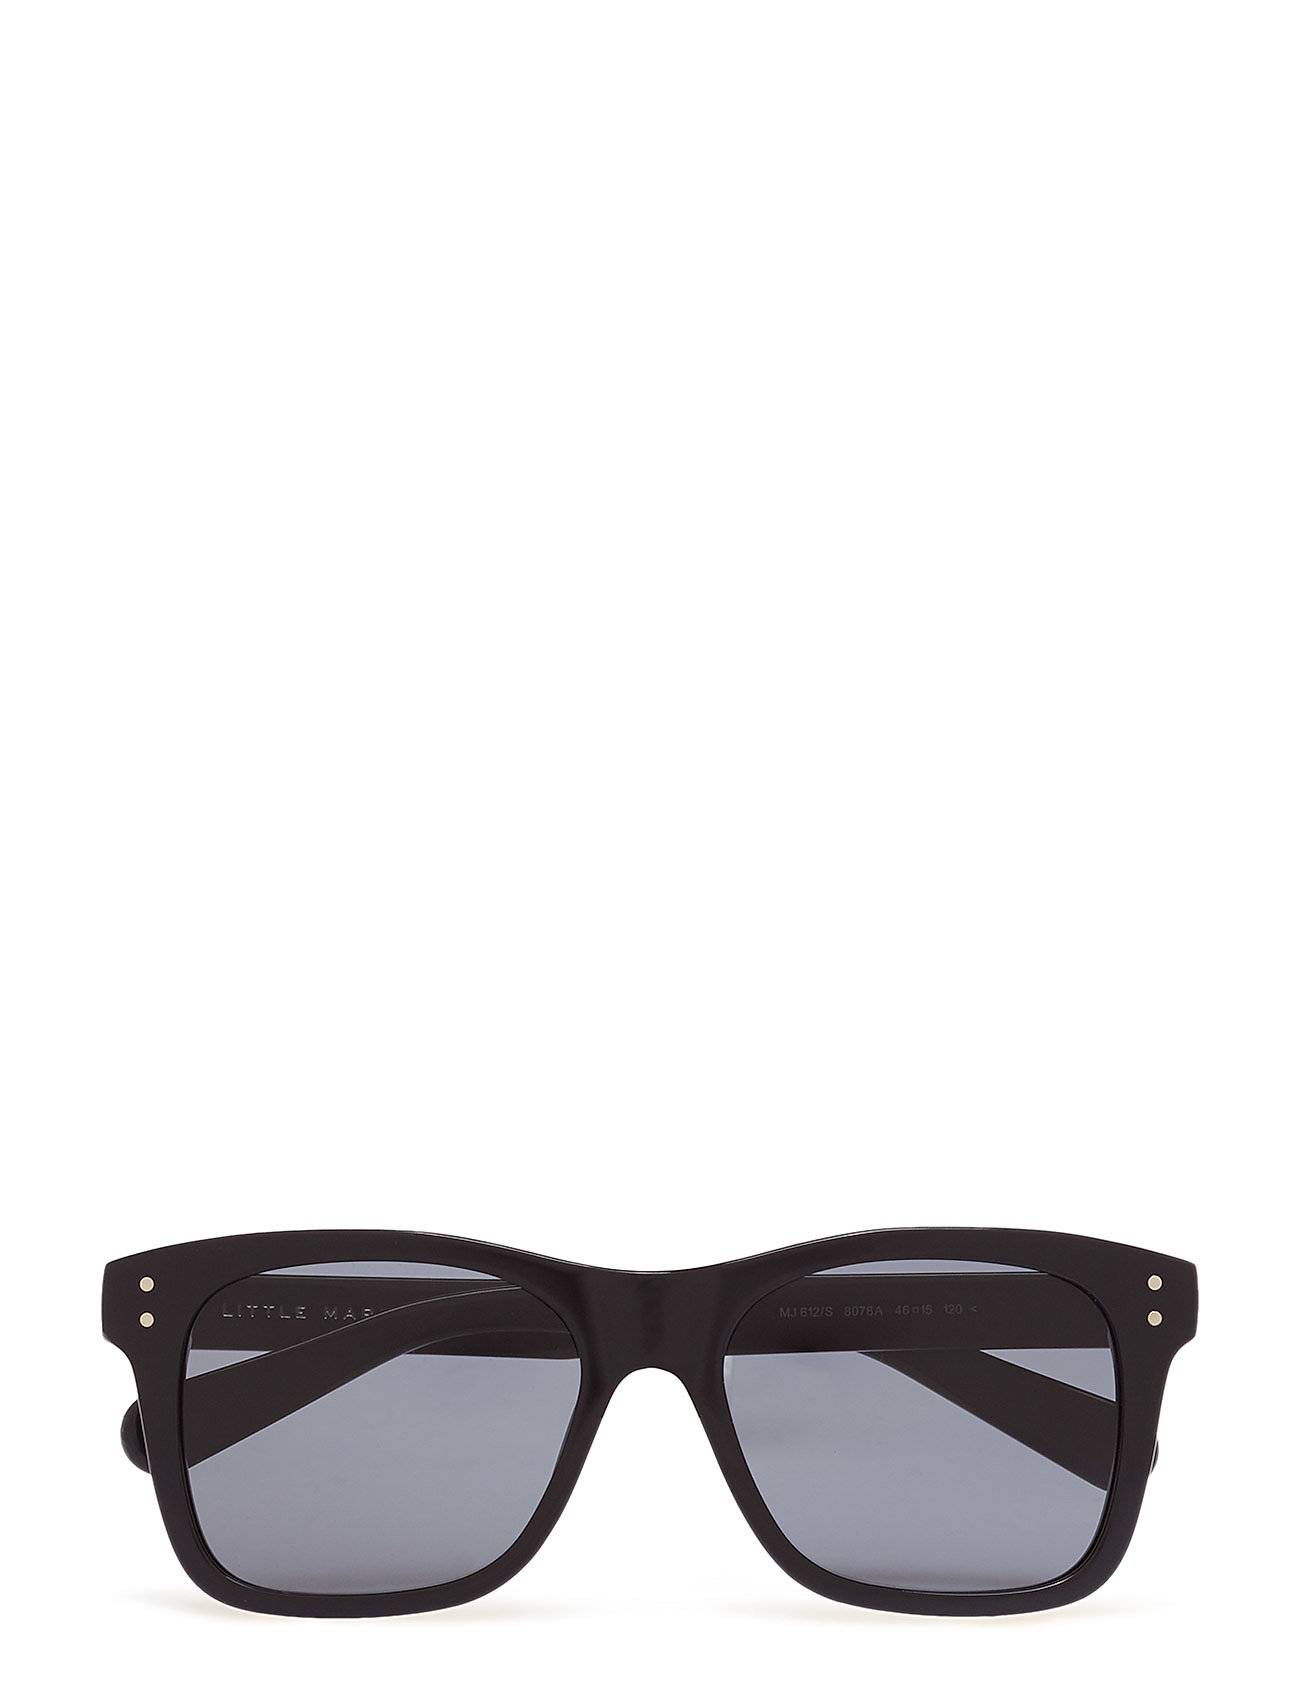 Image of Little Marc Jacobs Sunglasses Mj 612/S Aurinkolasit Musta Little Marc Jacobs Sunglasses